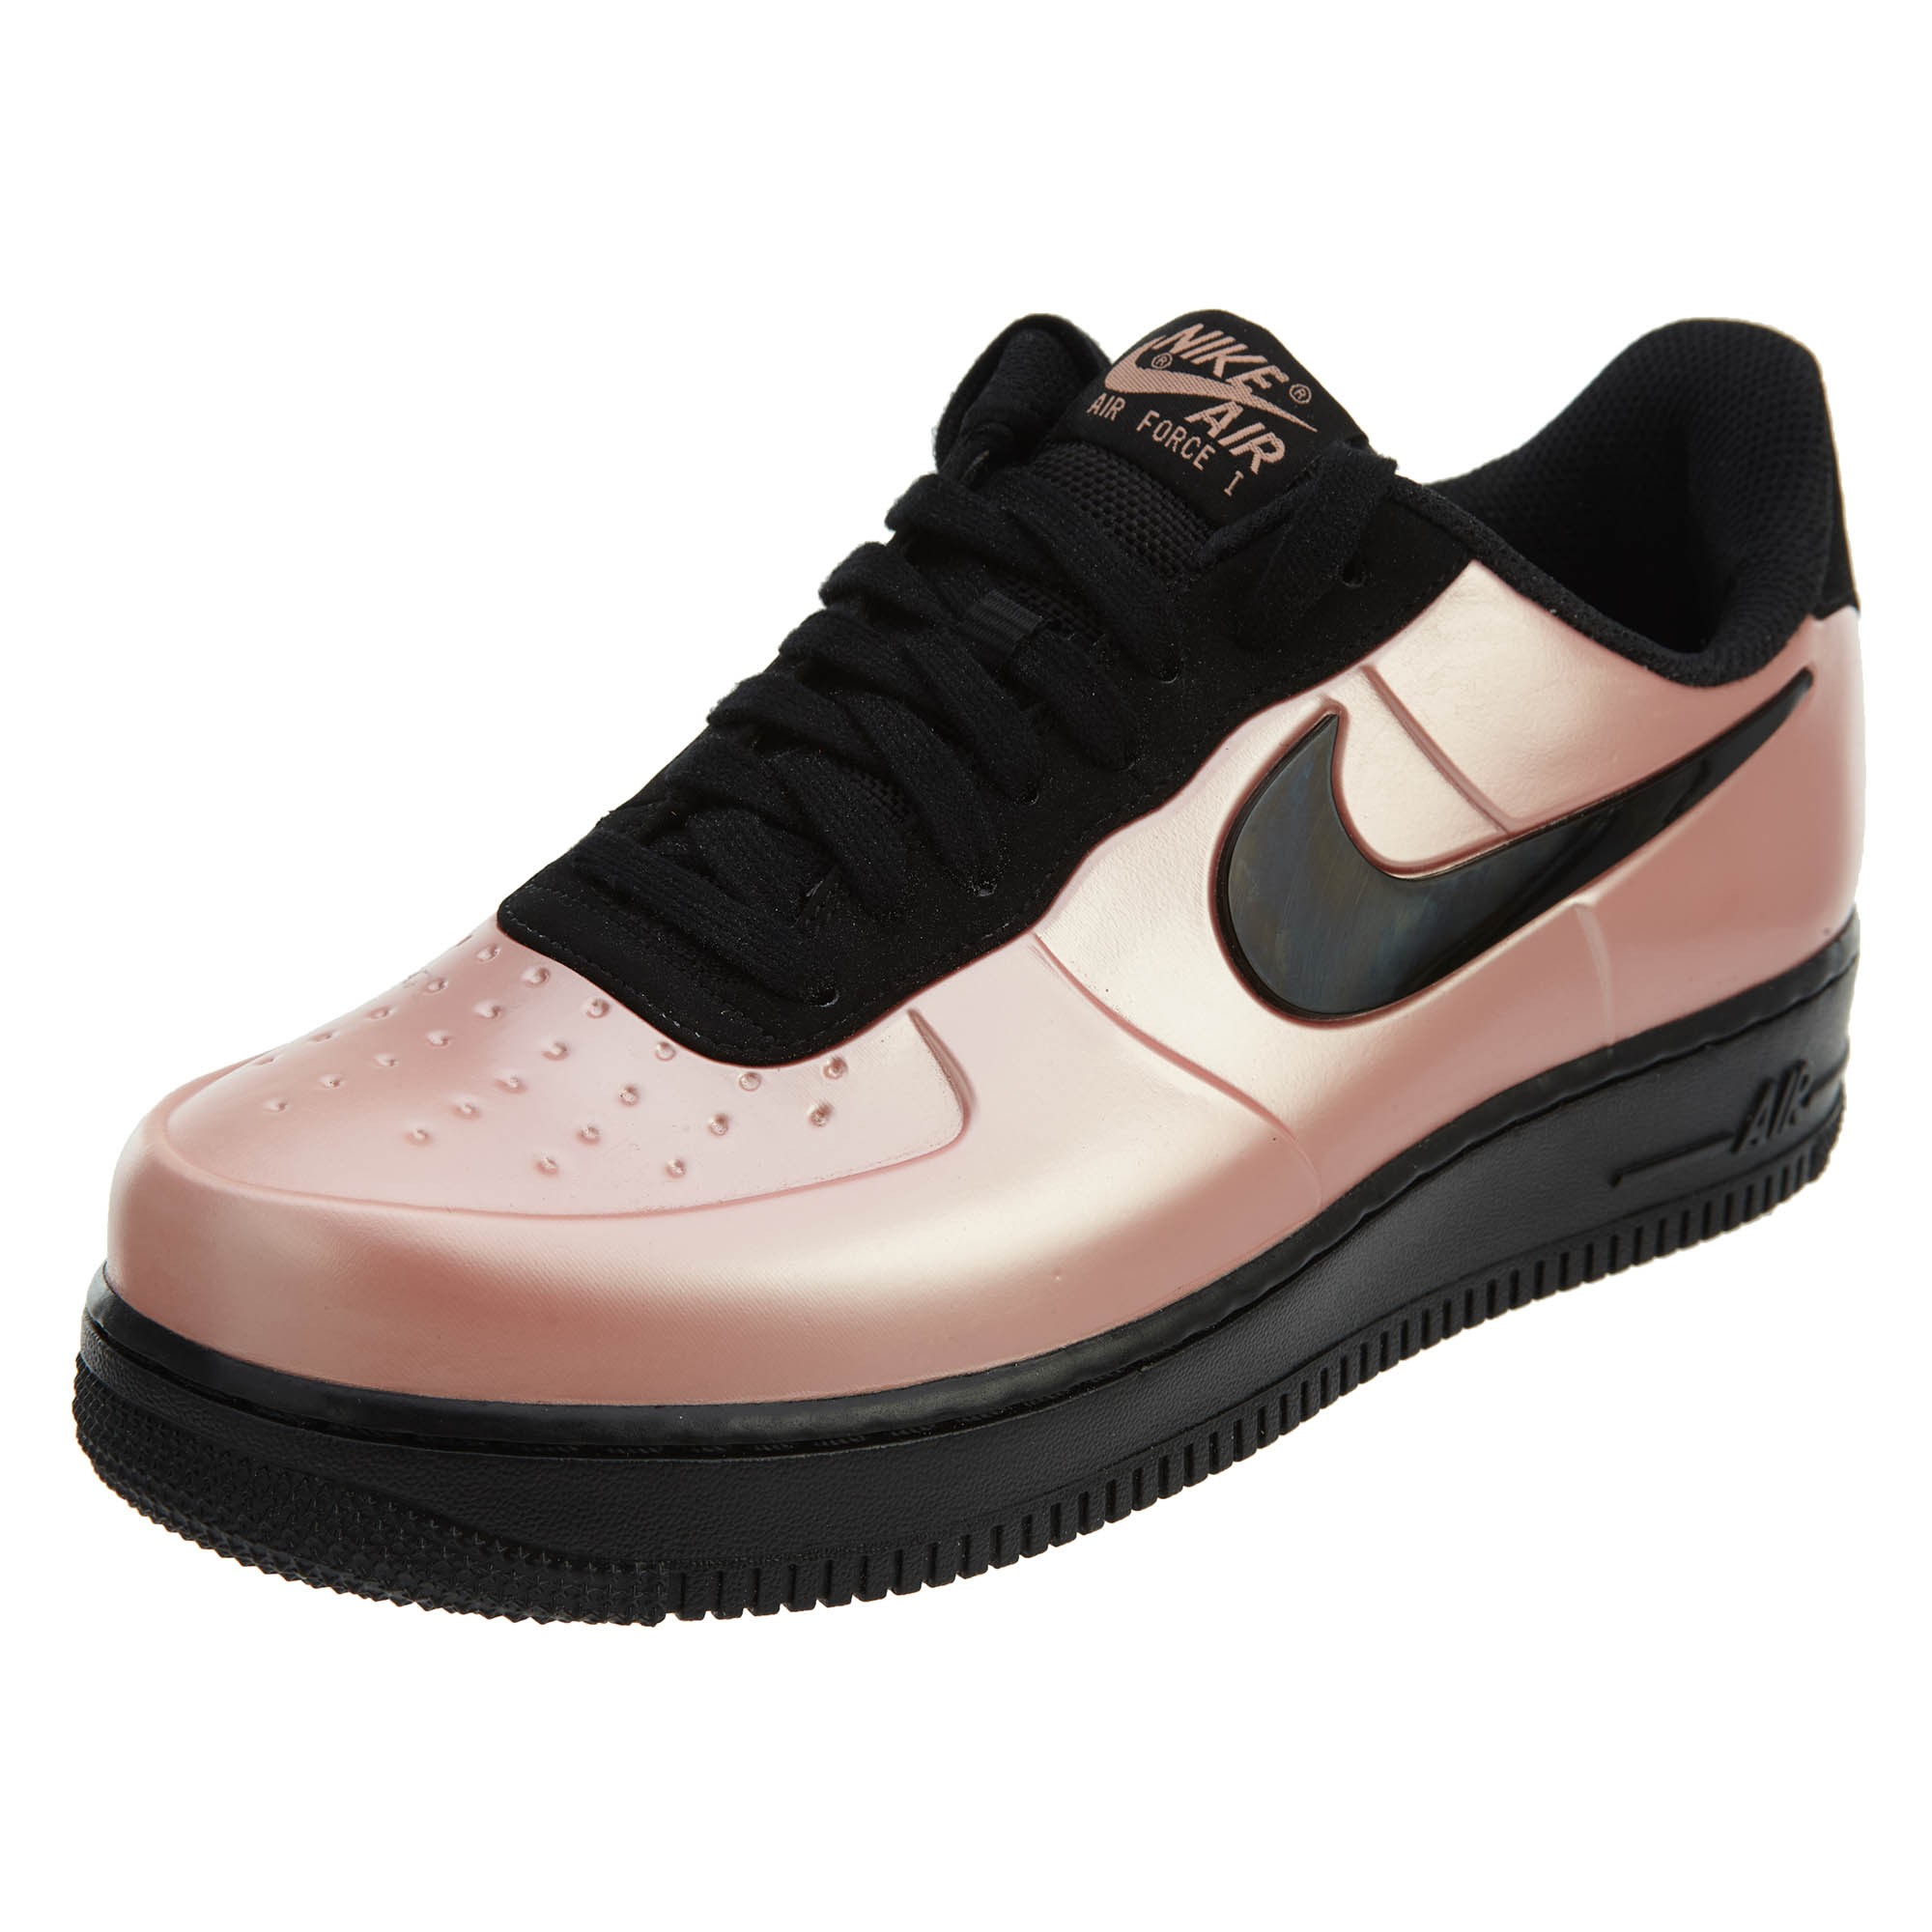 fd28d3ae09d germany nike air foamposite one 1 pink silver black white men sneakers shoes  314996 600 c6970 a1233  czech nike af1 foamposite pro cup mens style aj3664  ...